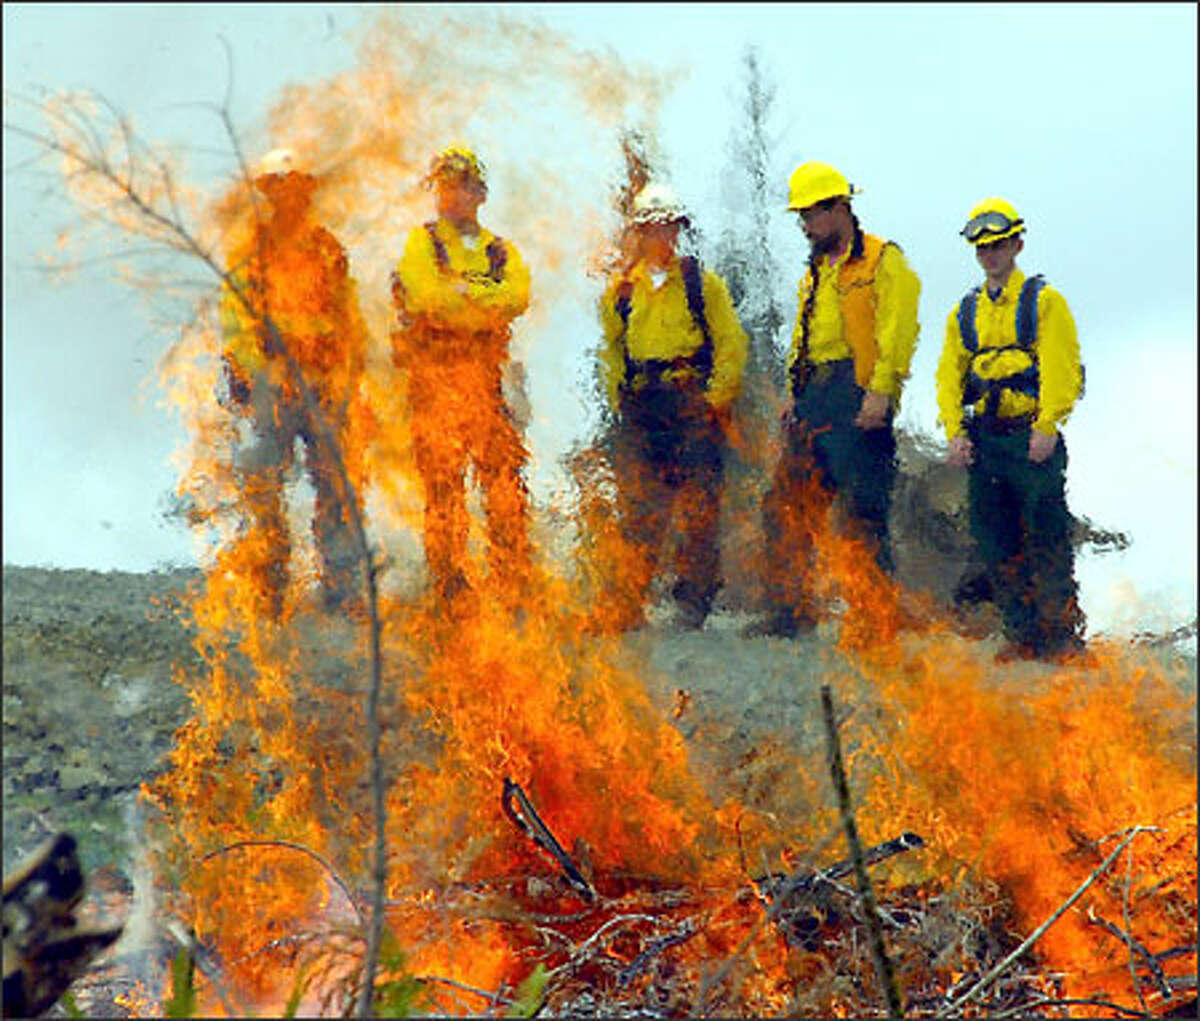 New firefighters and their trainers wait for the flames of a training fire to burn down before moving in to clean it up. Forest Service firefighters mainly train for fires on wild lands, but they are facing more and more blazes at private homes near wooded areas.